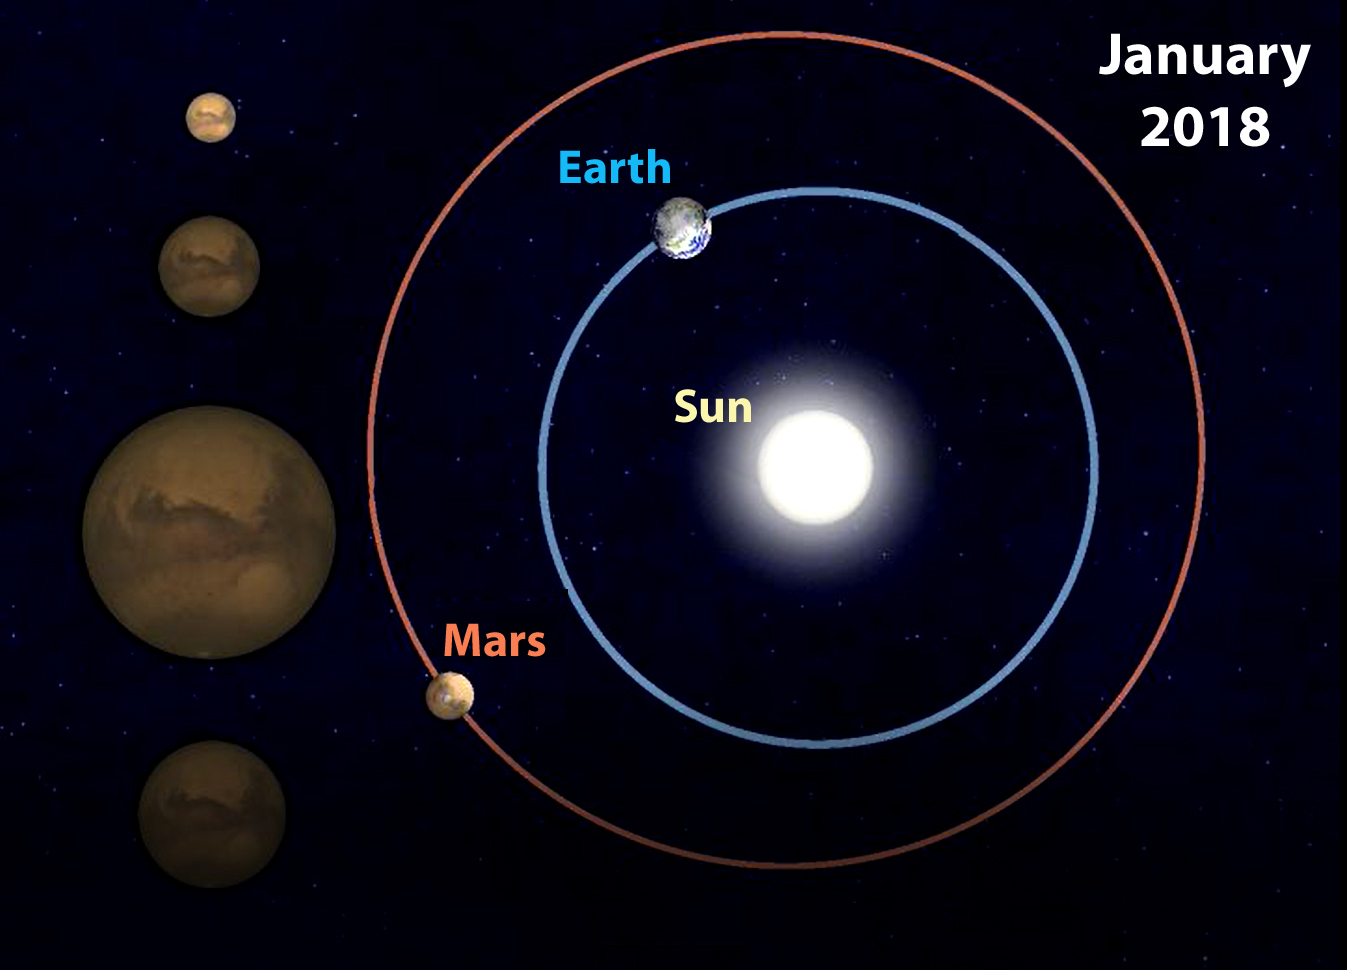 Mars-Earth in January 2018